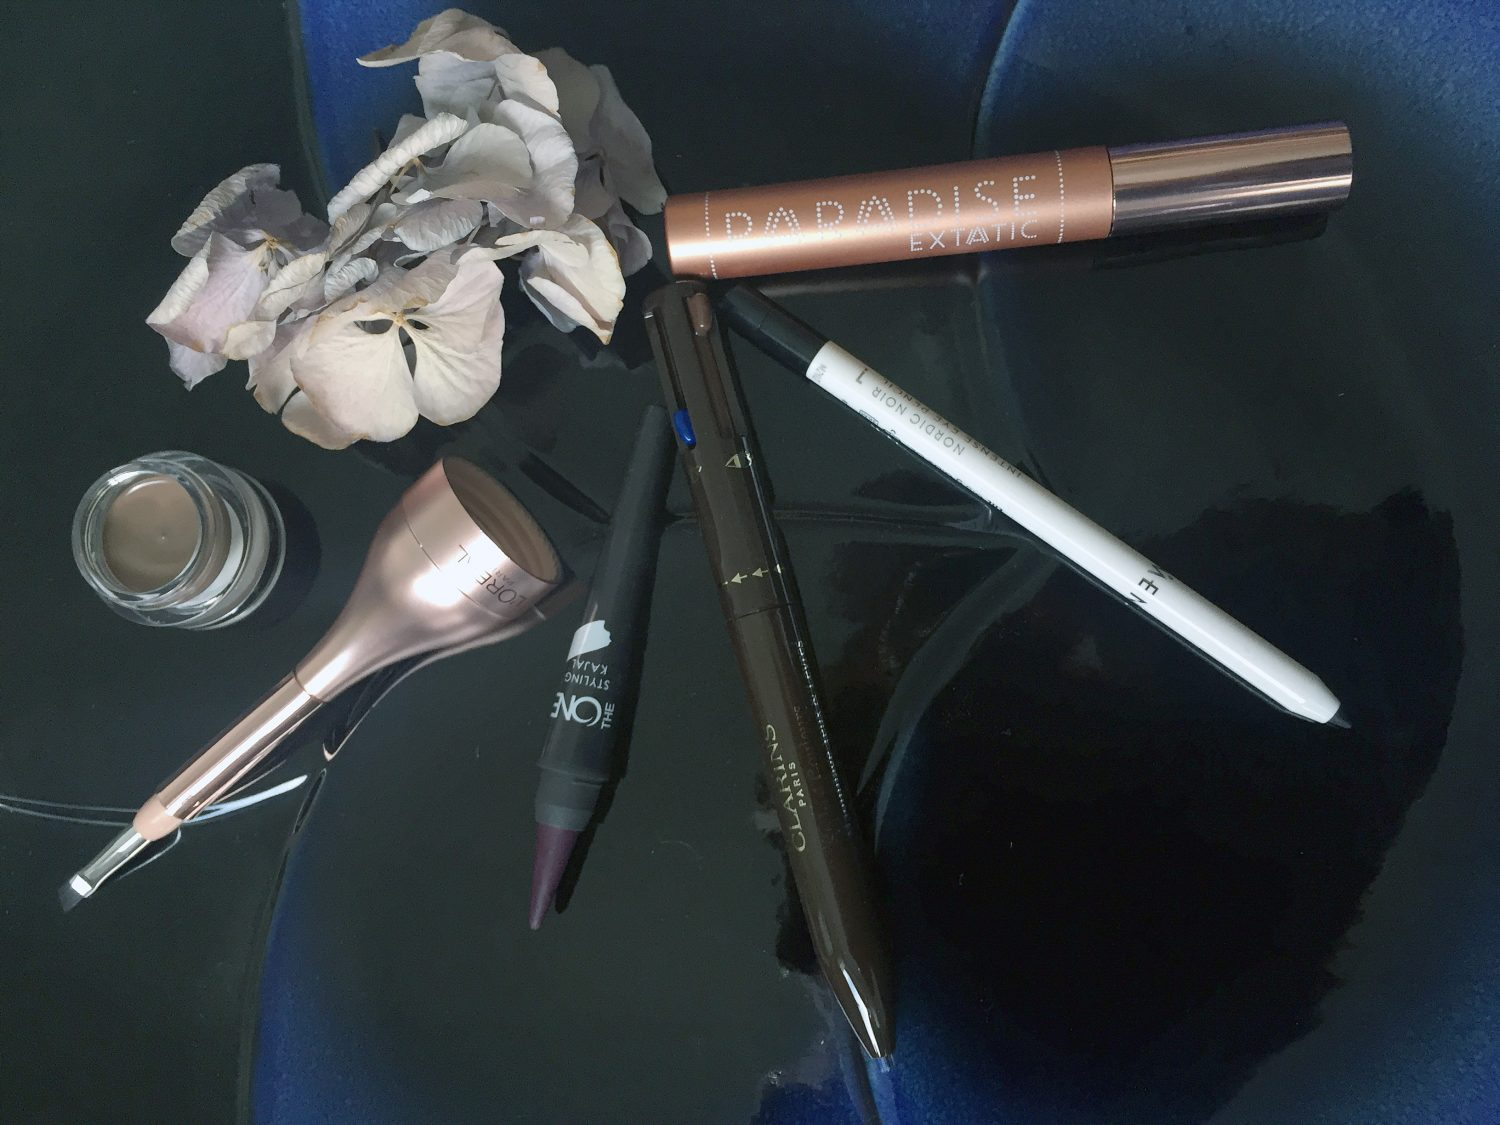 Vasemma L'Oréal Paris Paradise Pomade Extatic -kulmaväri sävy 103 Chatain, Oriflame The One Styling Kajal -rajausväri sävy Purple Intensity, Clarins Stylo 4 Color All-in-One Eyes & Lips -kynä, Lumene Nordic Noir Intense Eye Pencil -rajausväri ja L'Oréal Paris Paradise Extatic -ripsiväri.